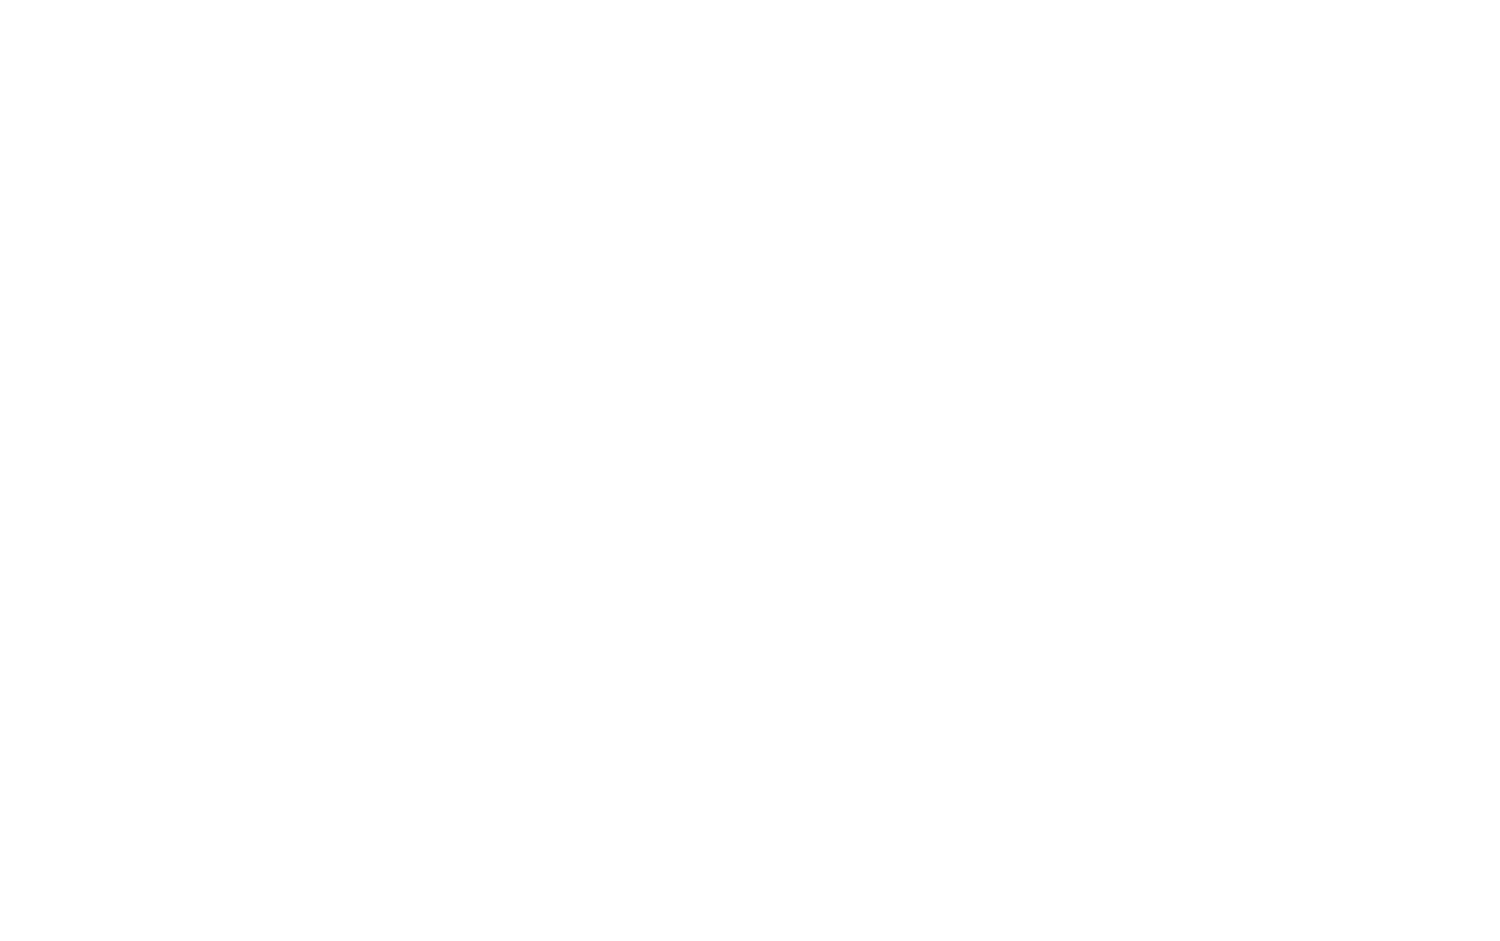 Transformation Life Church